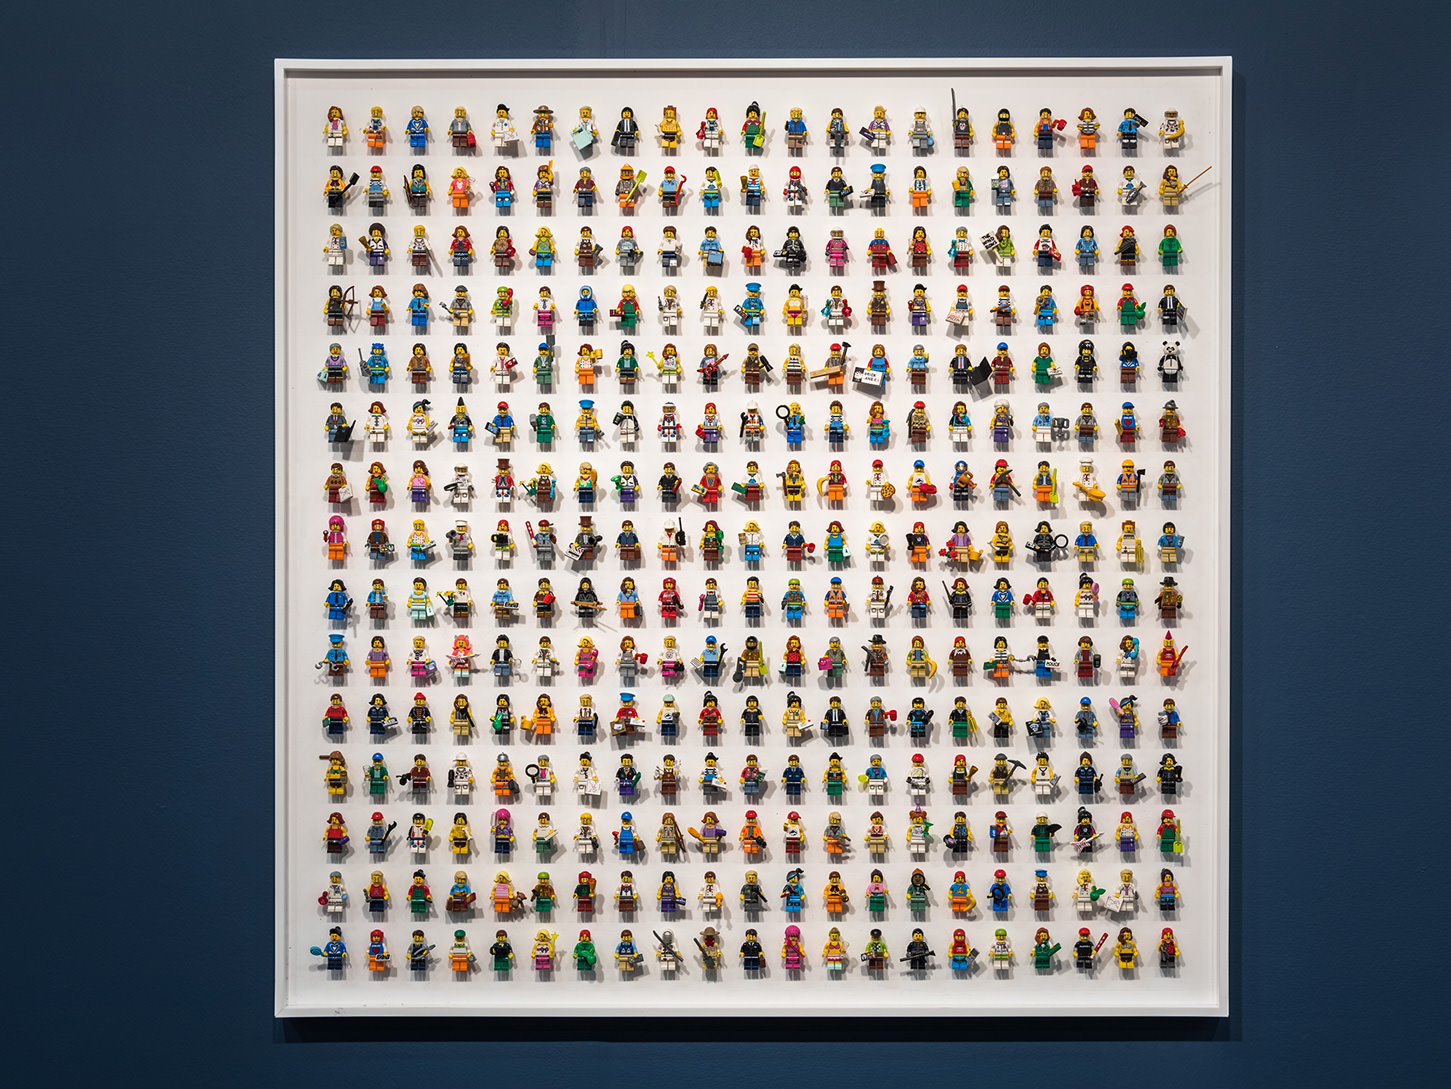 Camouflage_lego_james_burke_art_artist_affordable_art_fair_moniker_shoreditch_london_2 2.jpg